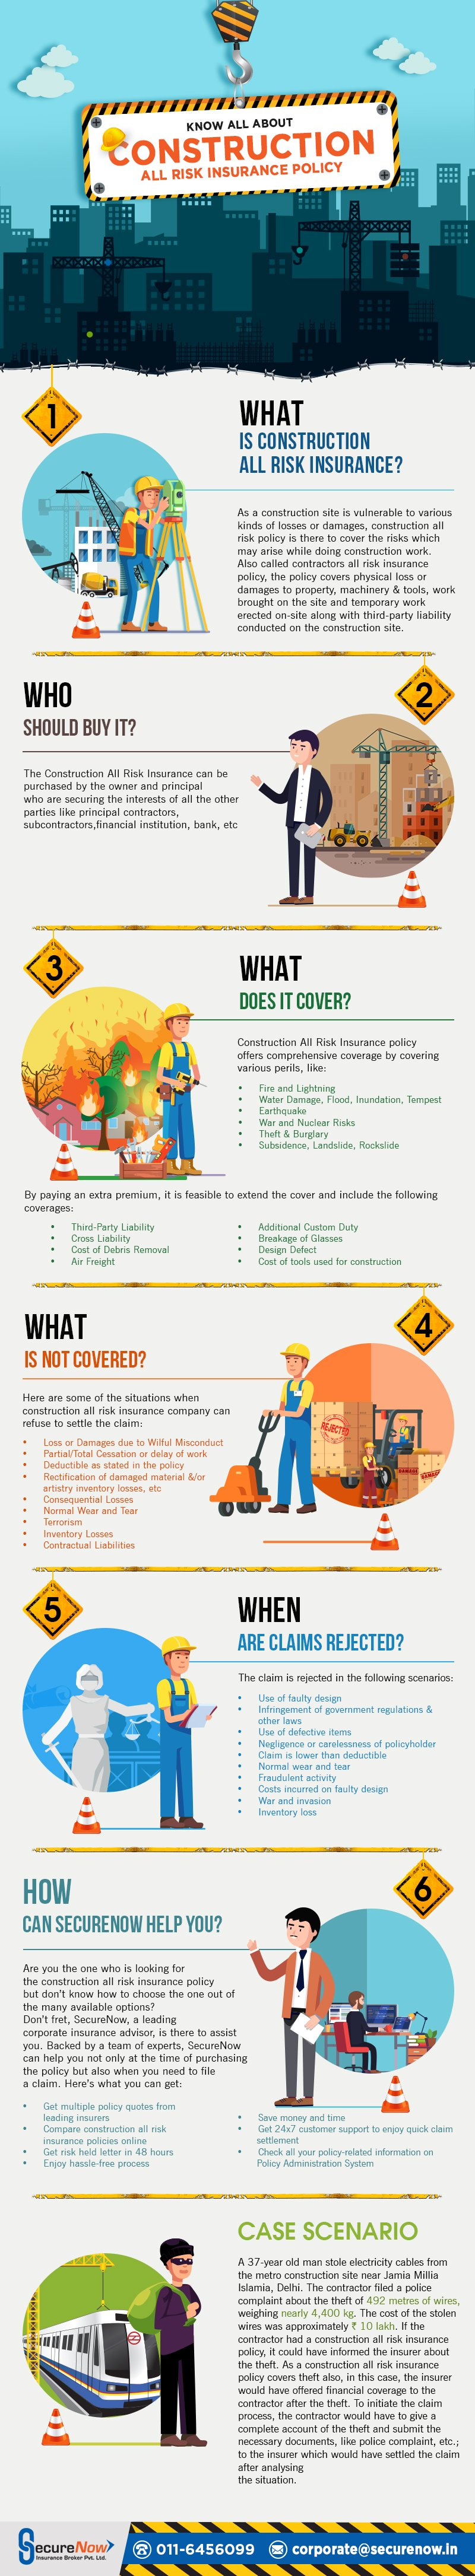 construction-all-risk-insurance-policy